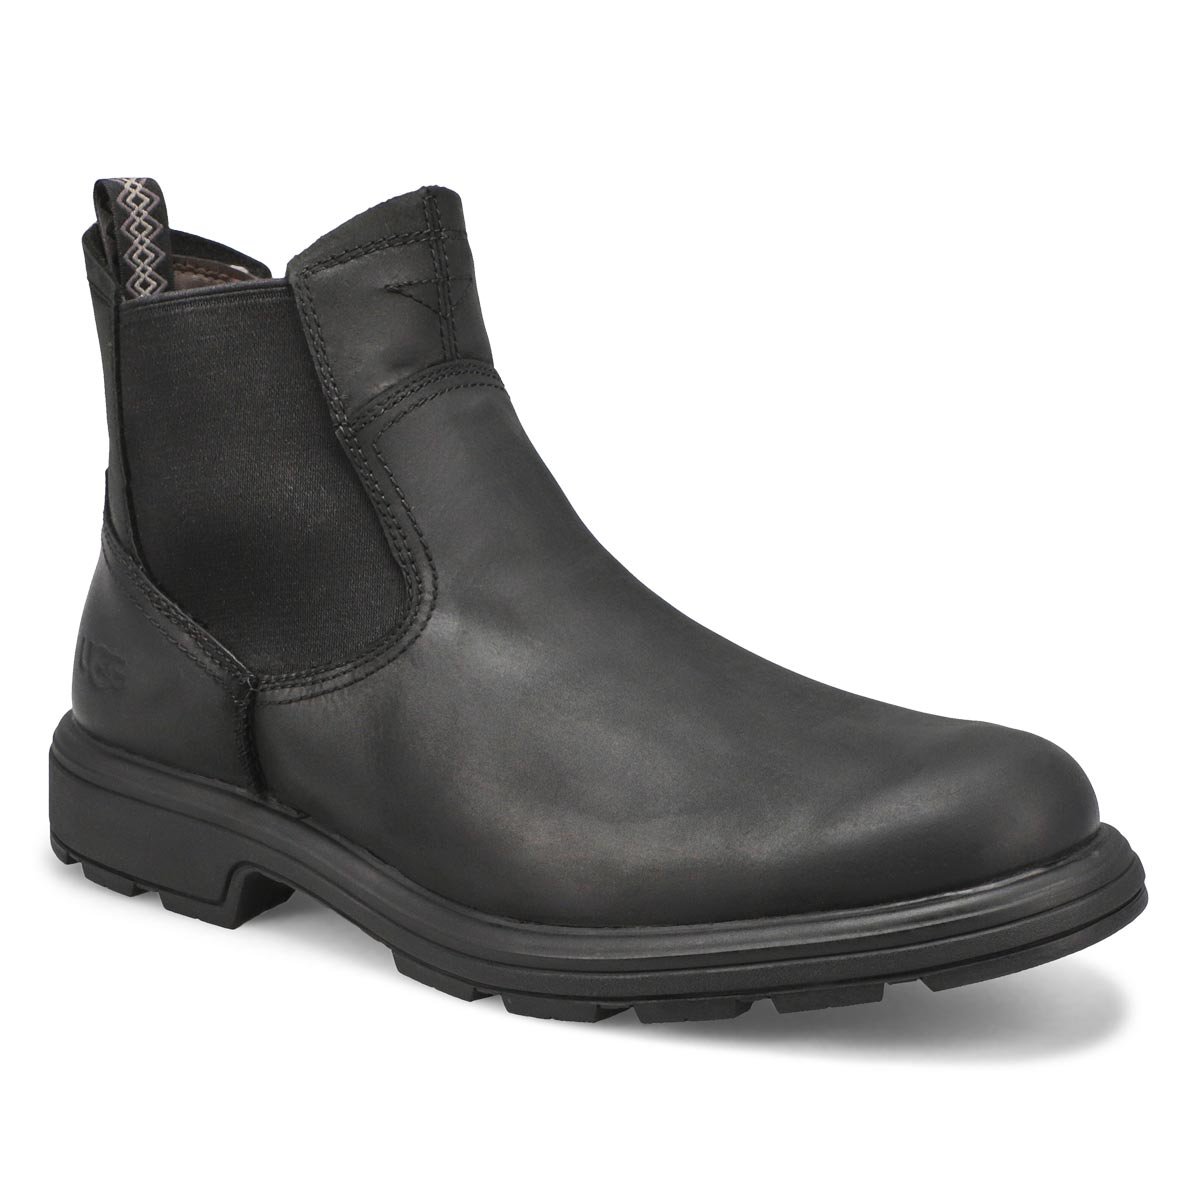 Mns Biltmore black wtpf chelsea boot